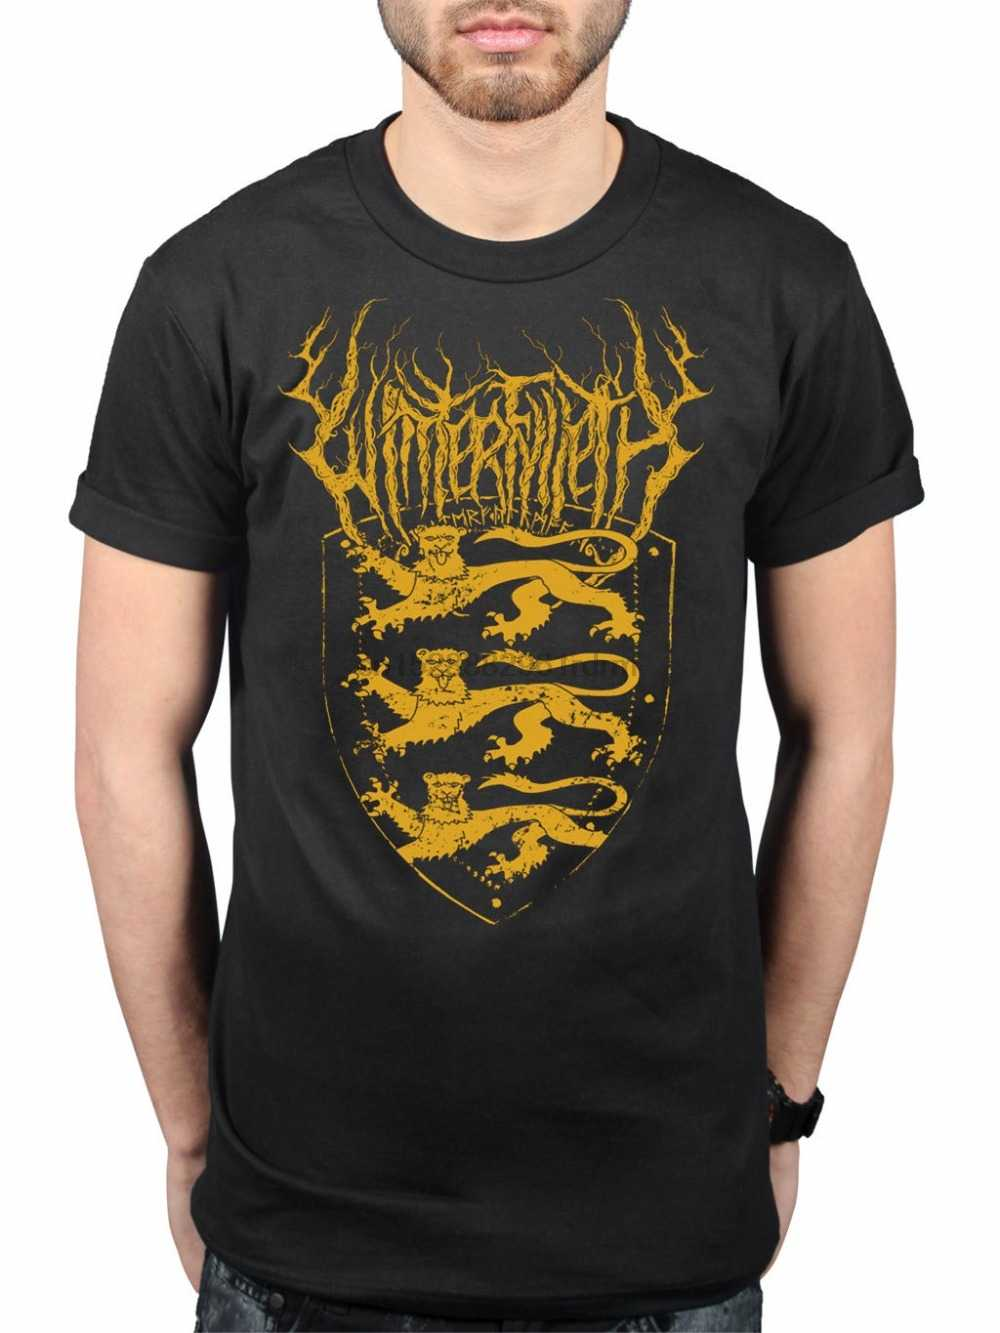 Print T Shirts Short Printing WinterFylleth Three Lions T-Shirt English Black Metal Band Tour Merch O-Neck Short-Sleeve T Shirts